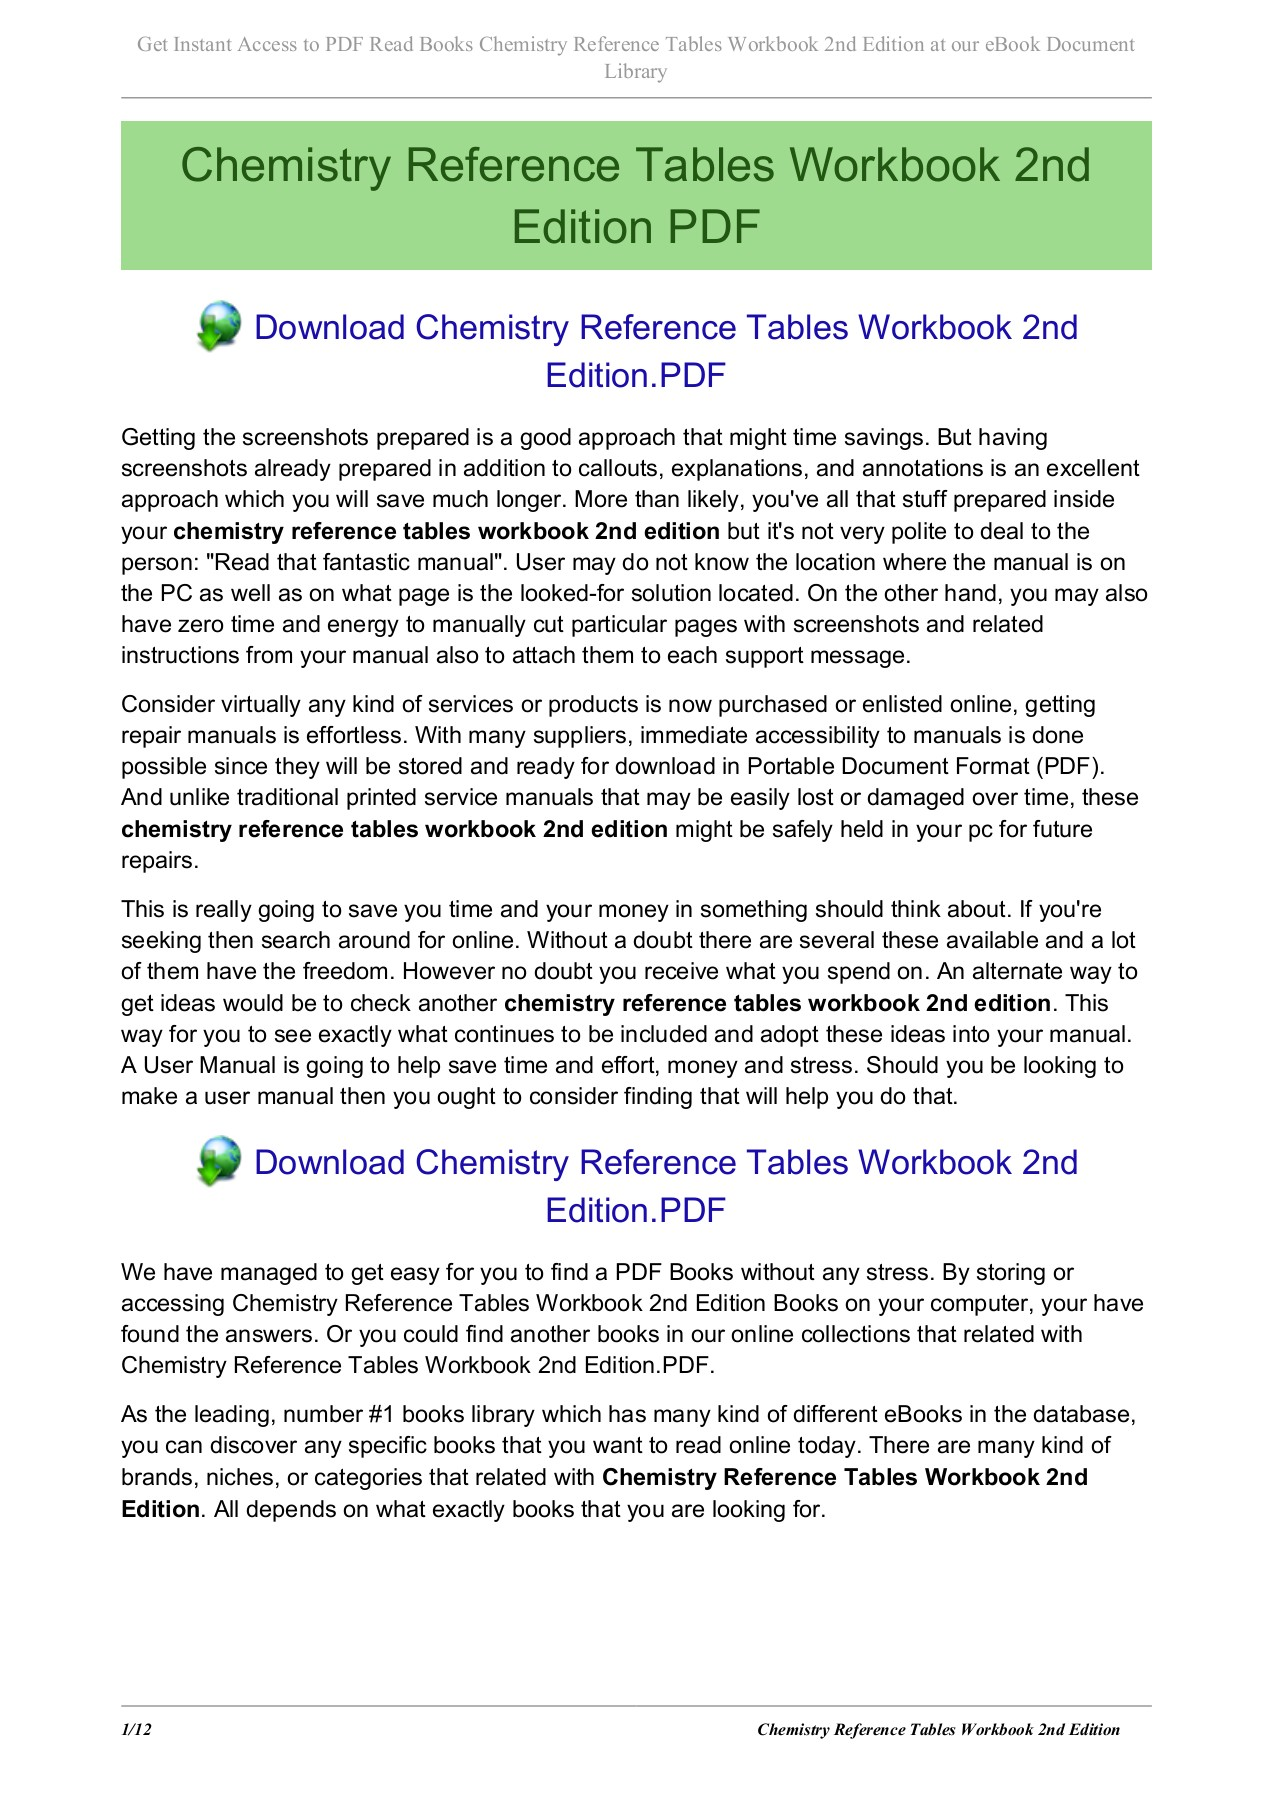 Chemistry Reference Tables Workbook 2nd Edition Pages 1 - 12